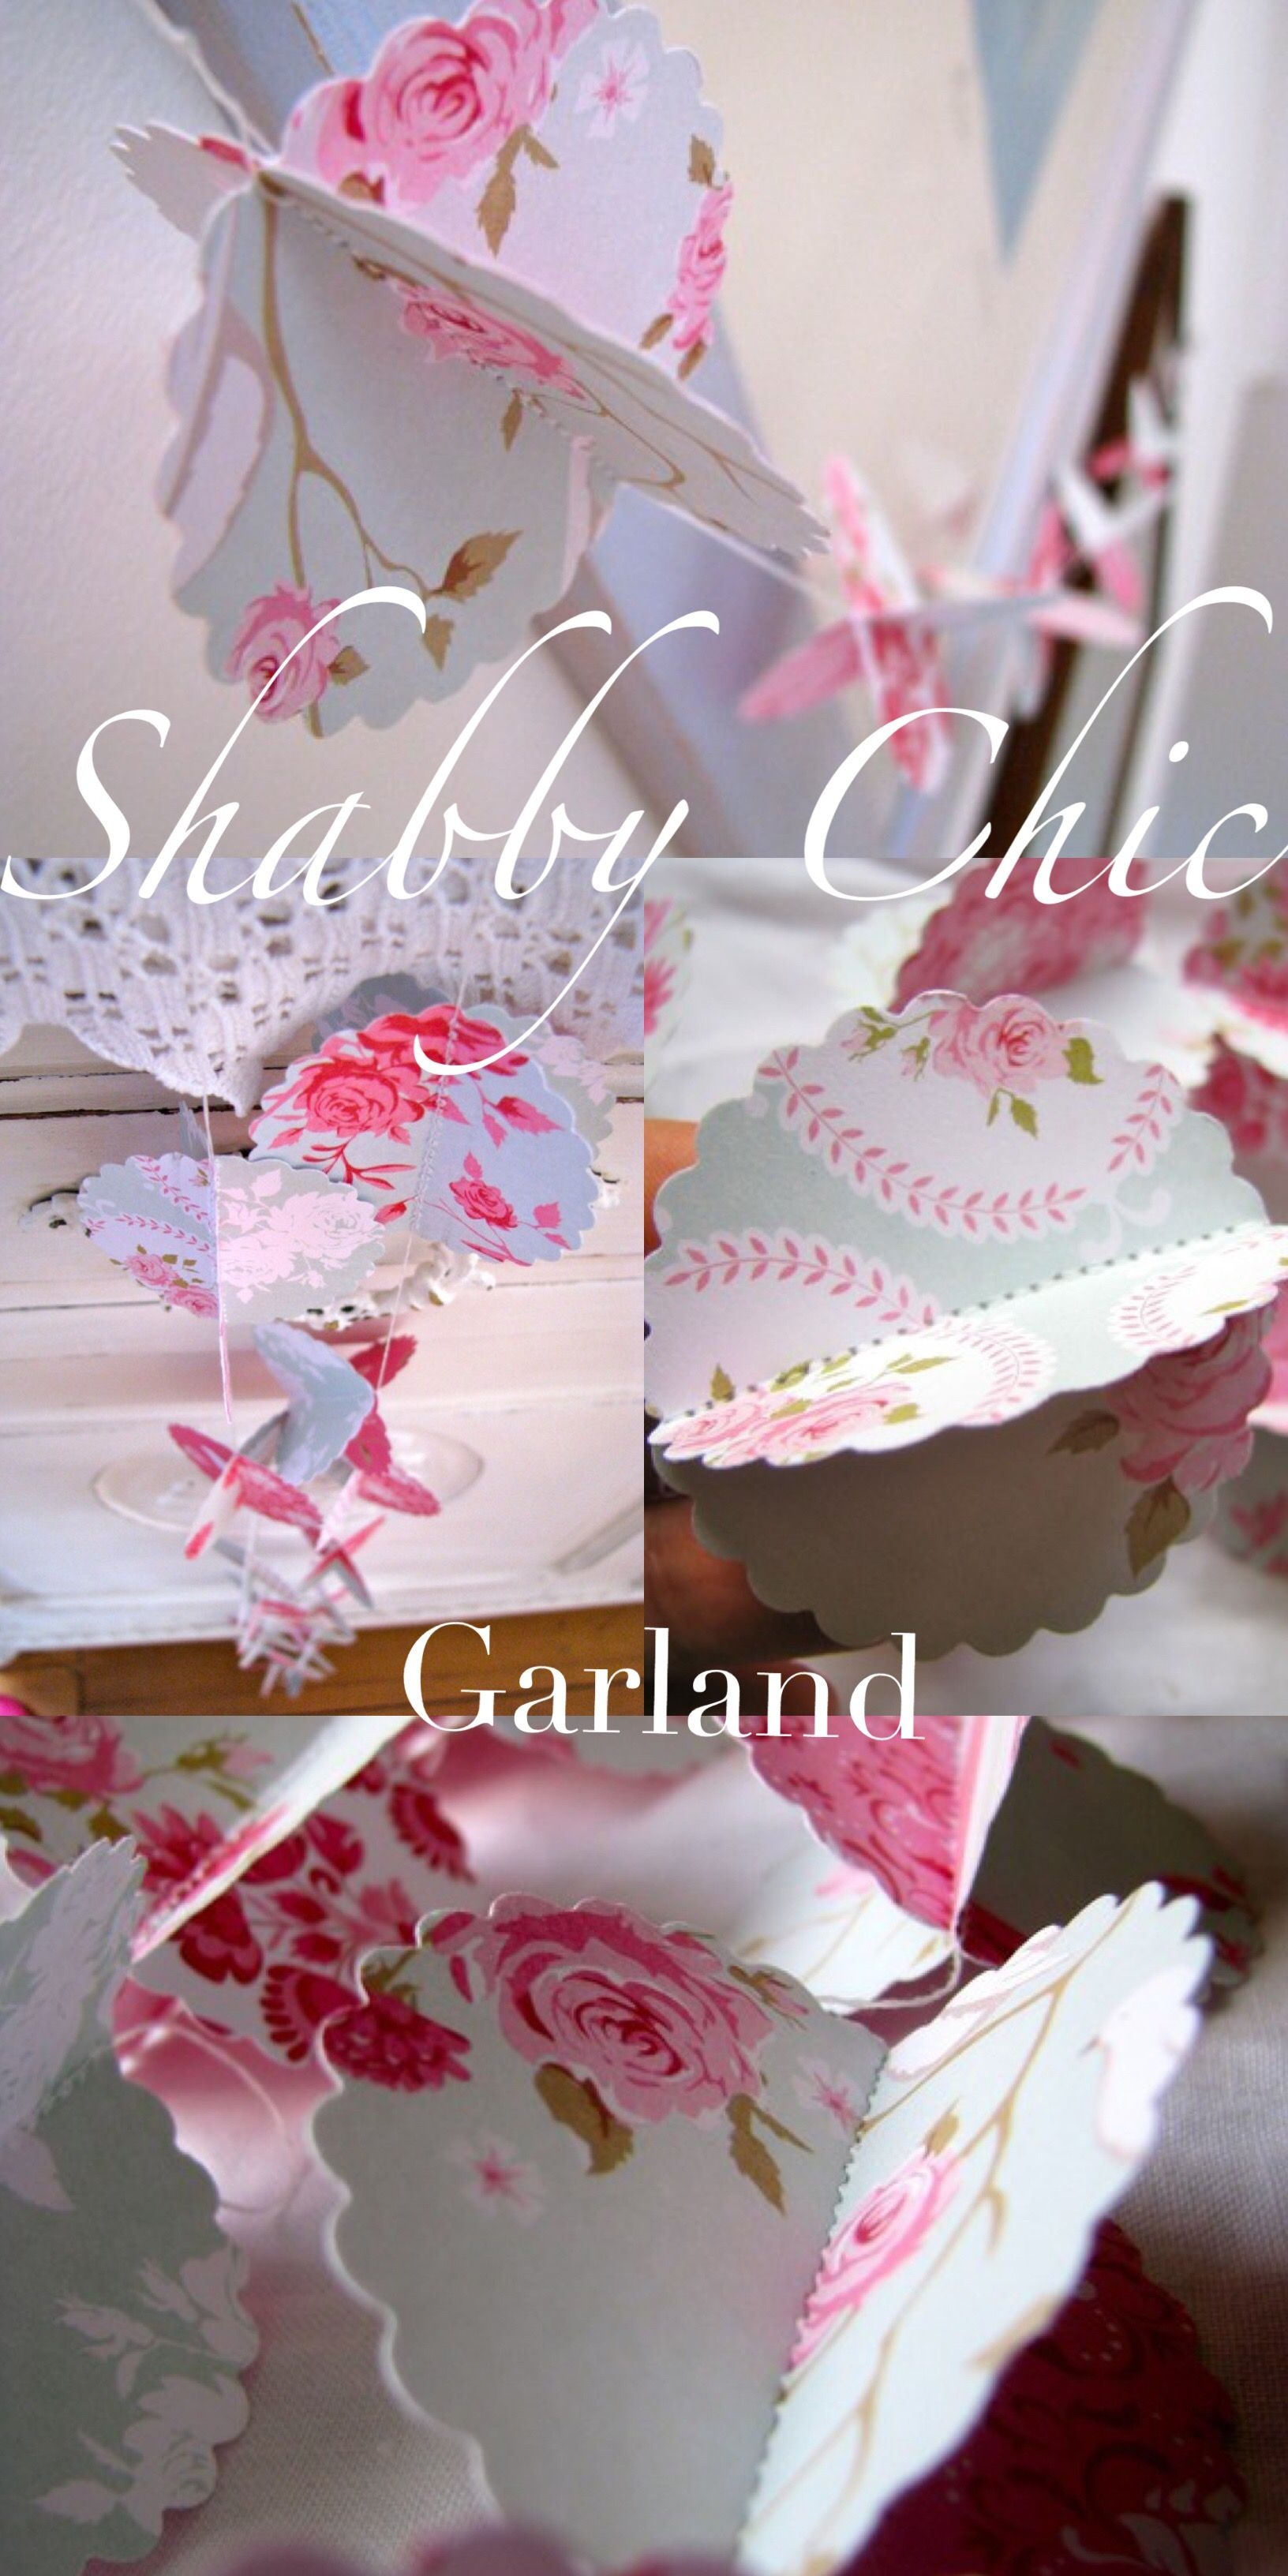 ad Beautiful shabby chic garland Party decorations Perfect for